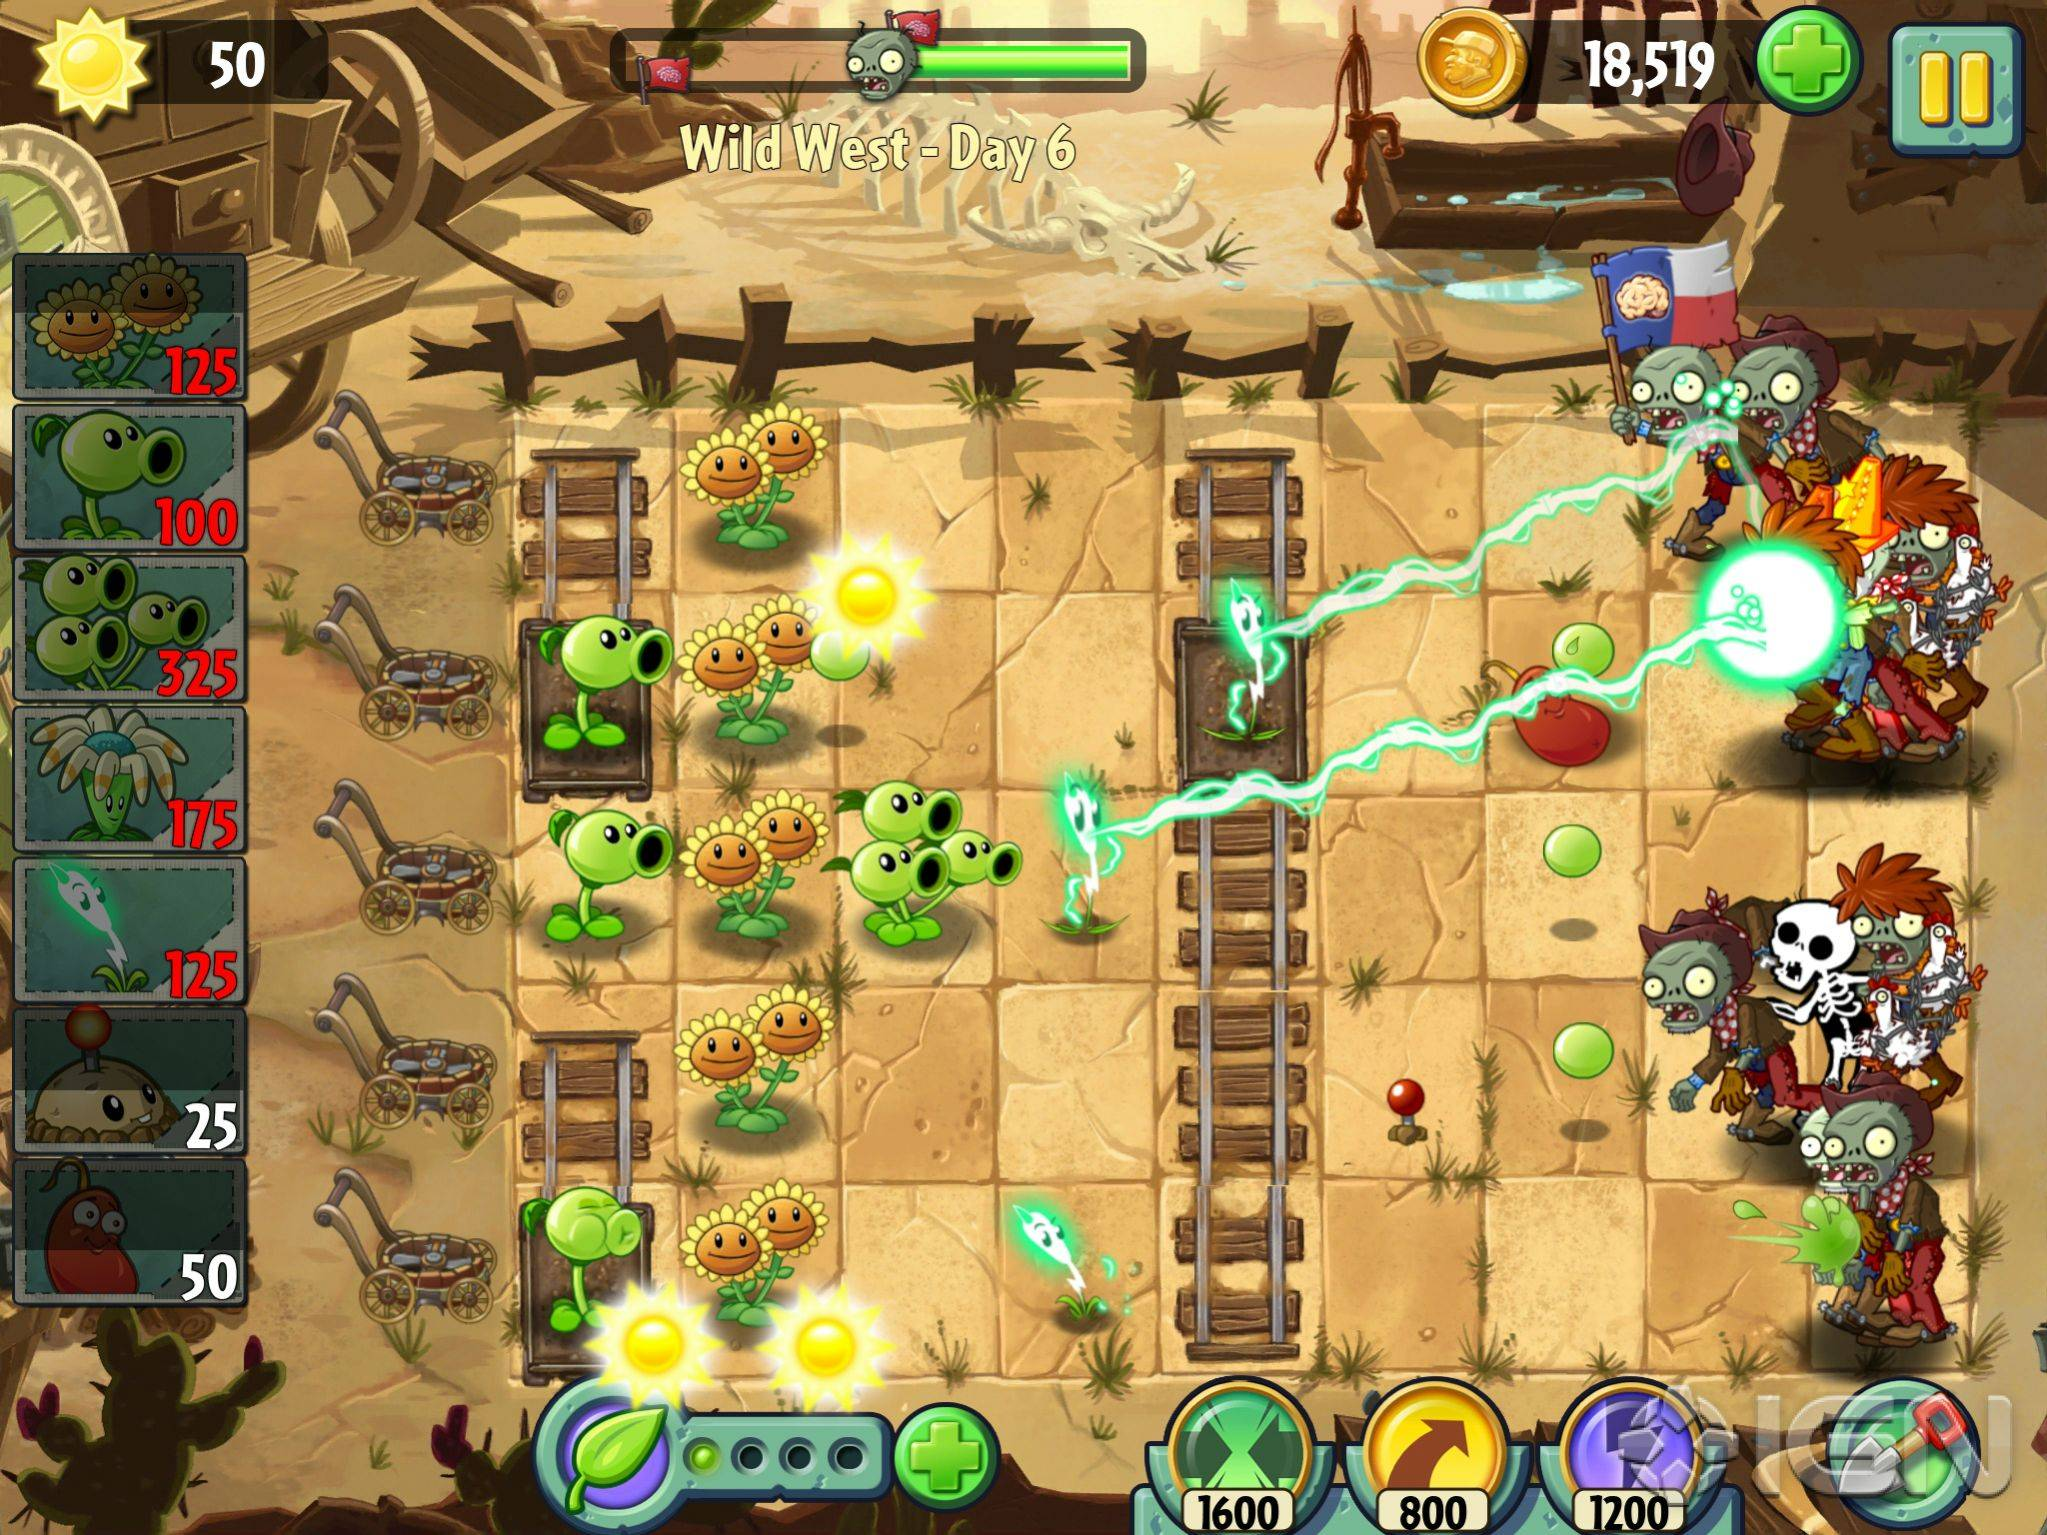 http://www.true-gaming.net/home/wp-content/uploads/2013/06/Plants-vs.-Zombies-2.jpg